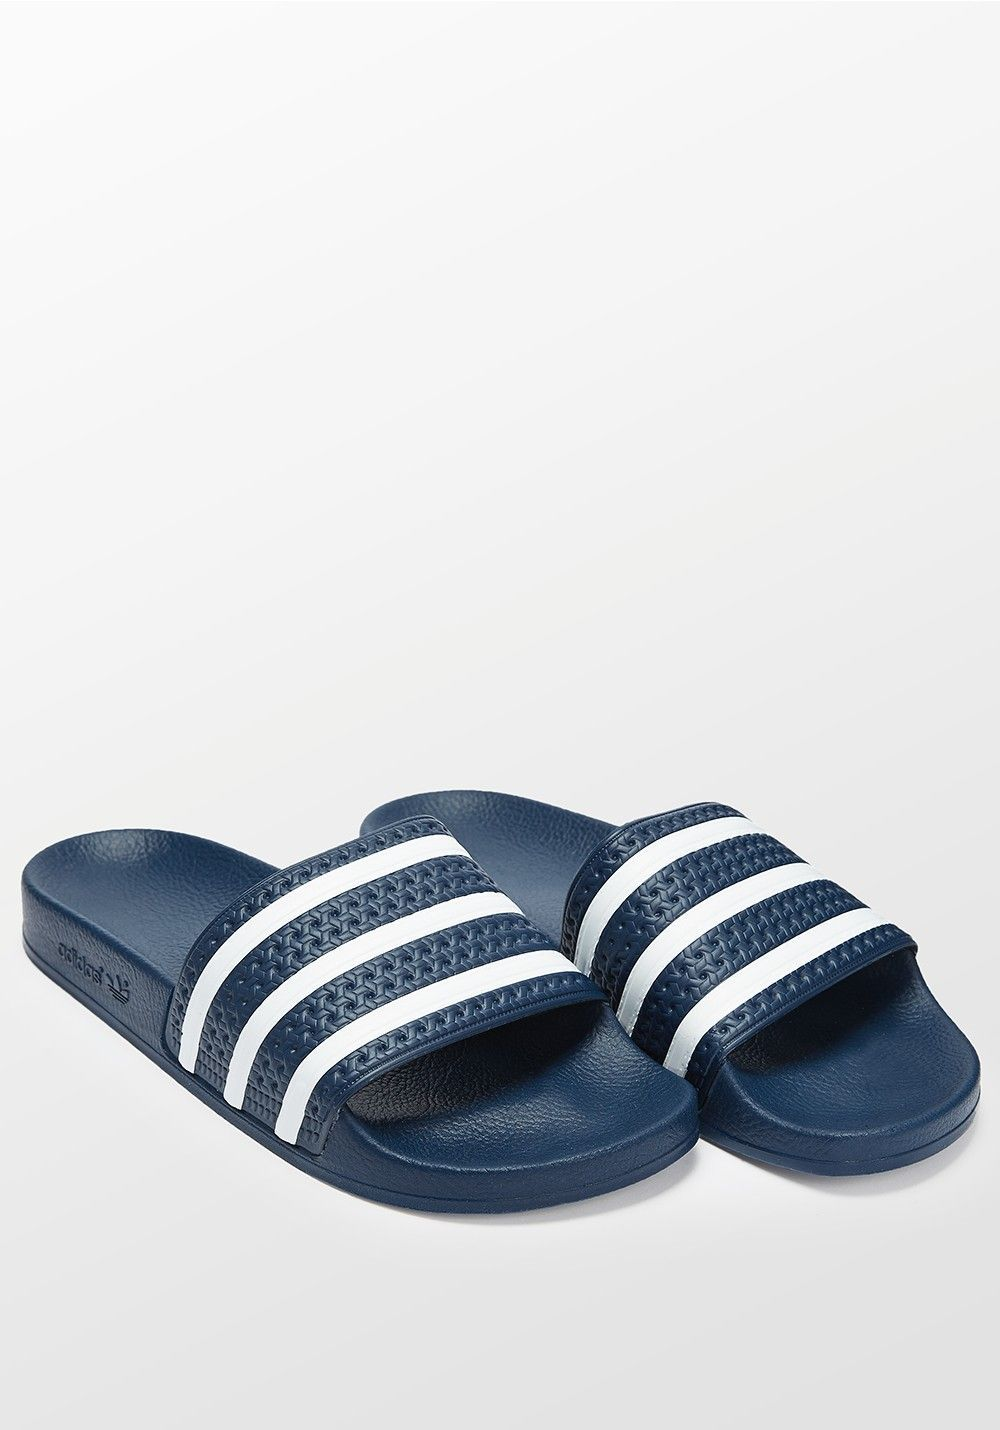 3055b661b057a4 Image result for adidas slides blue and white